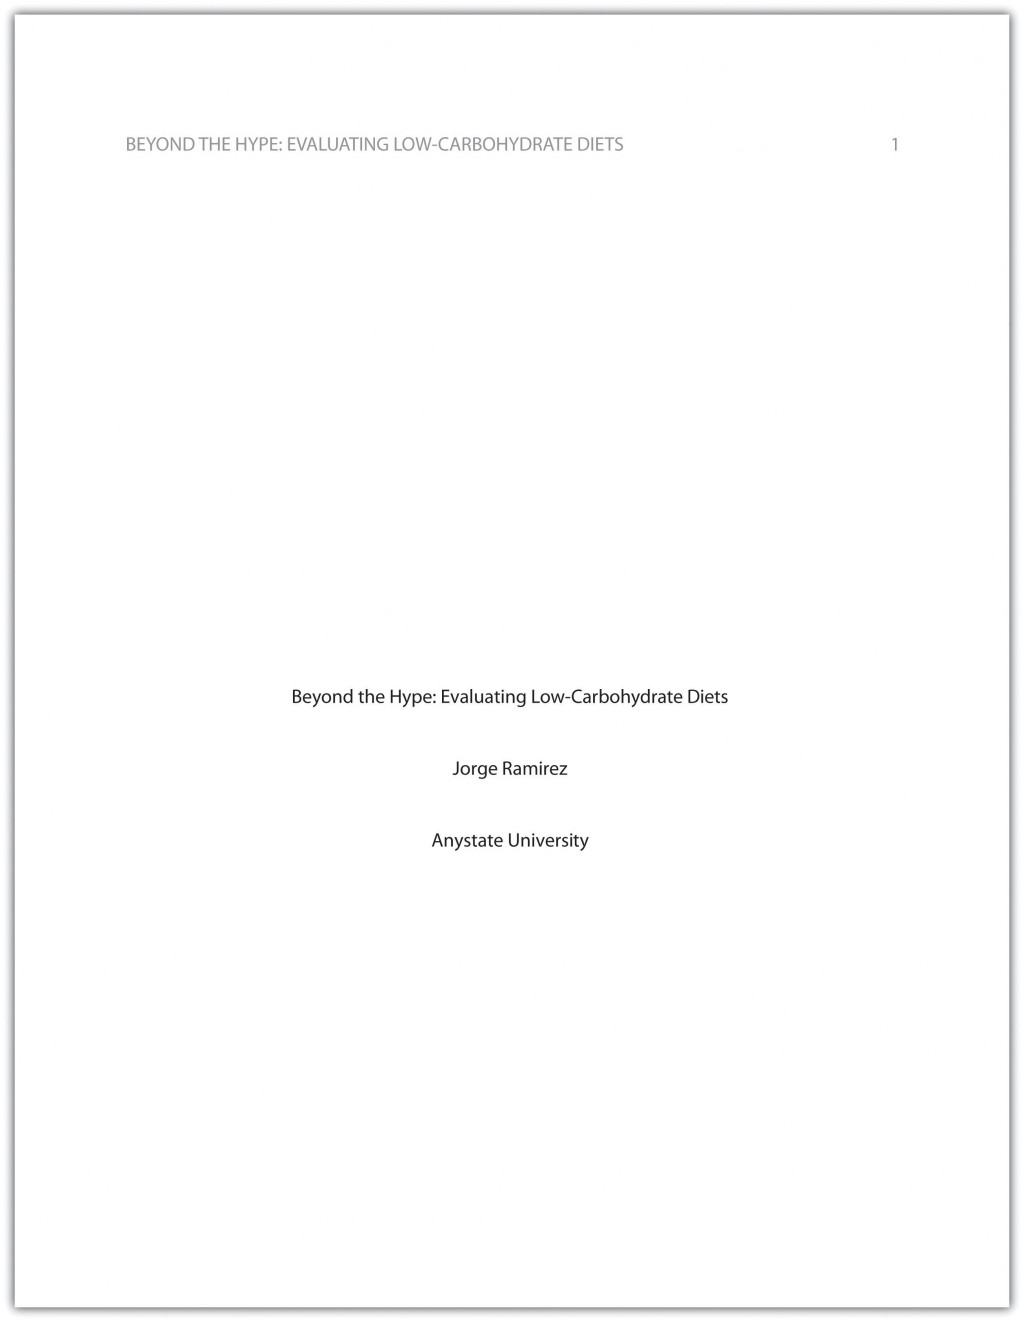 007 Research Paper Apa Style For Presenting Singular Papers Large